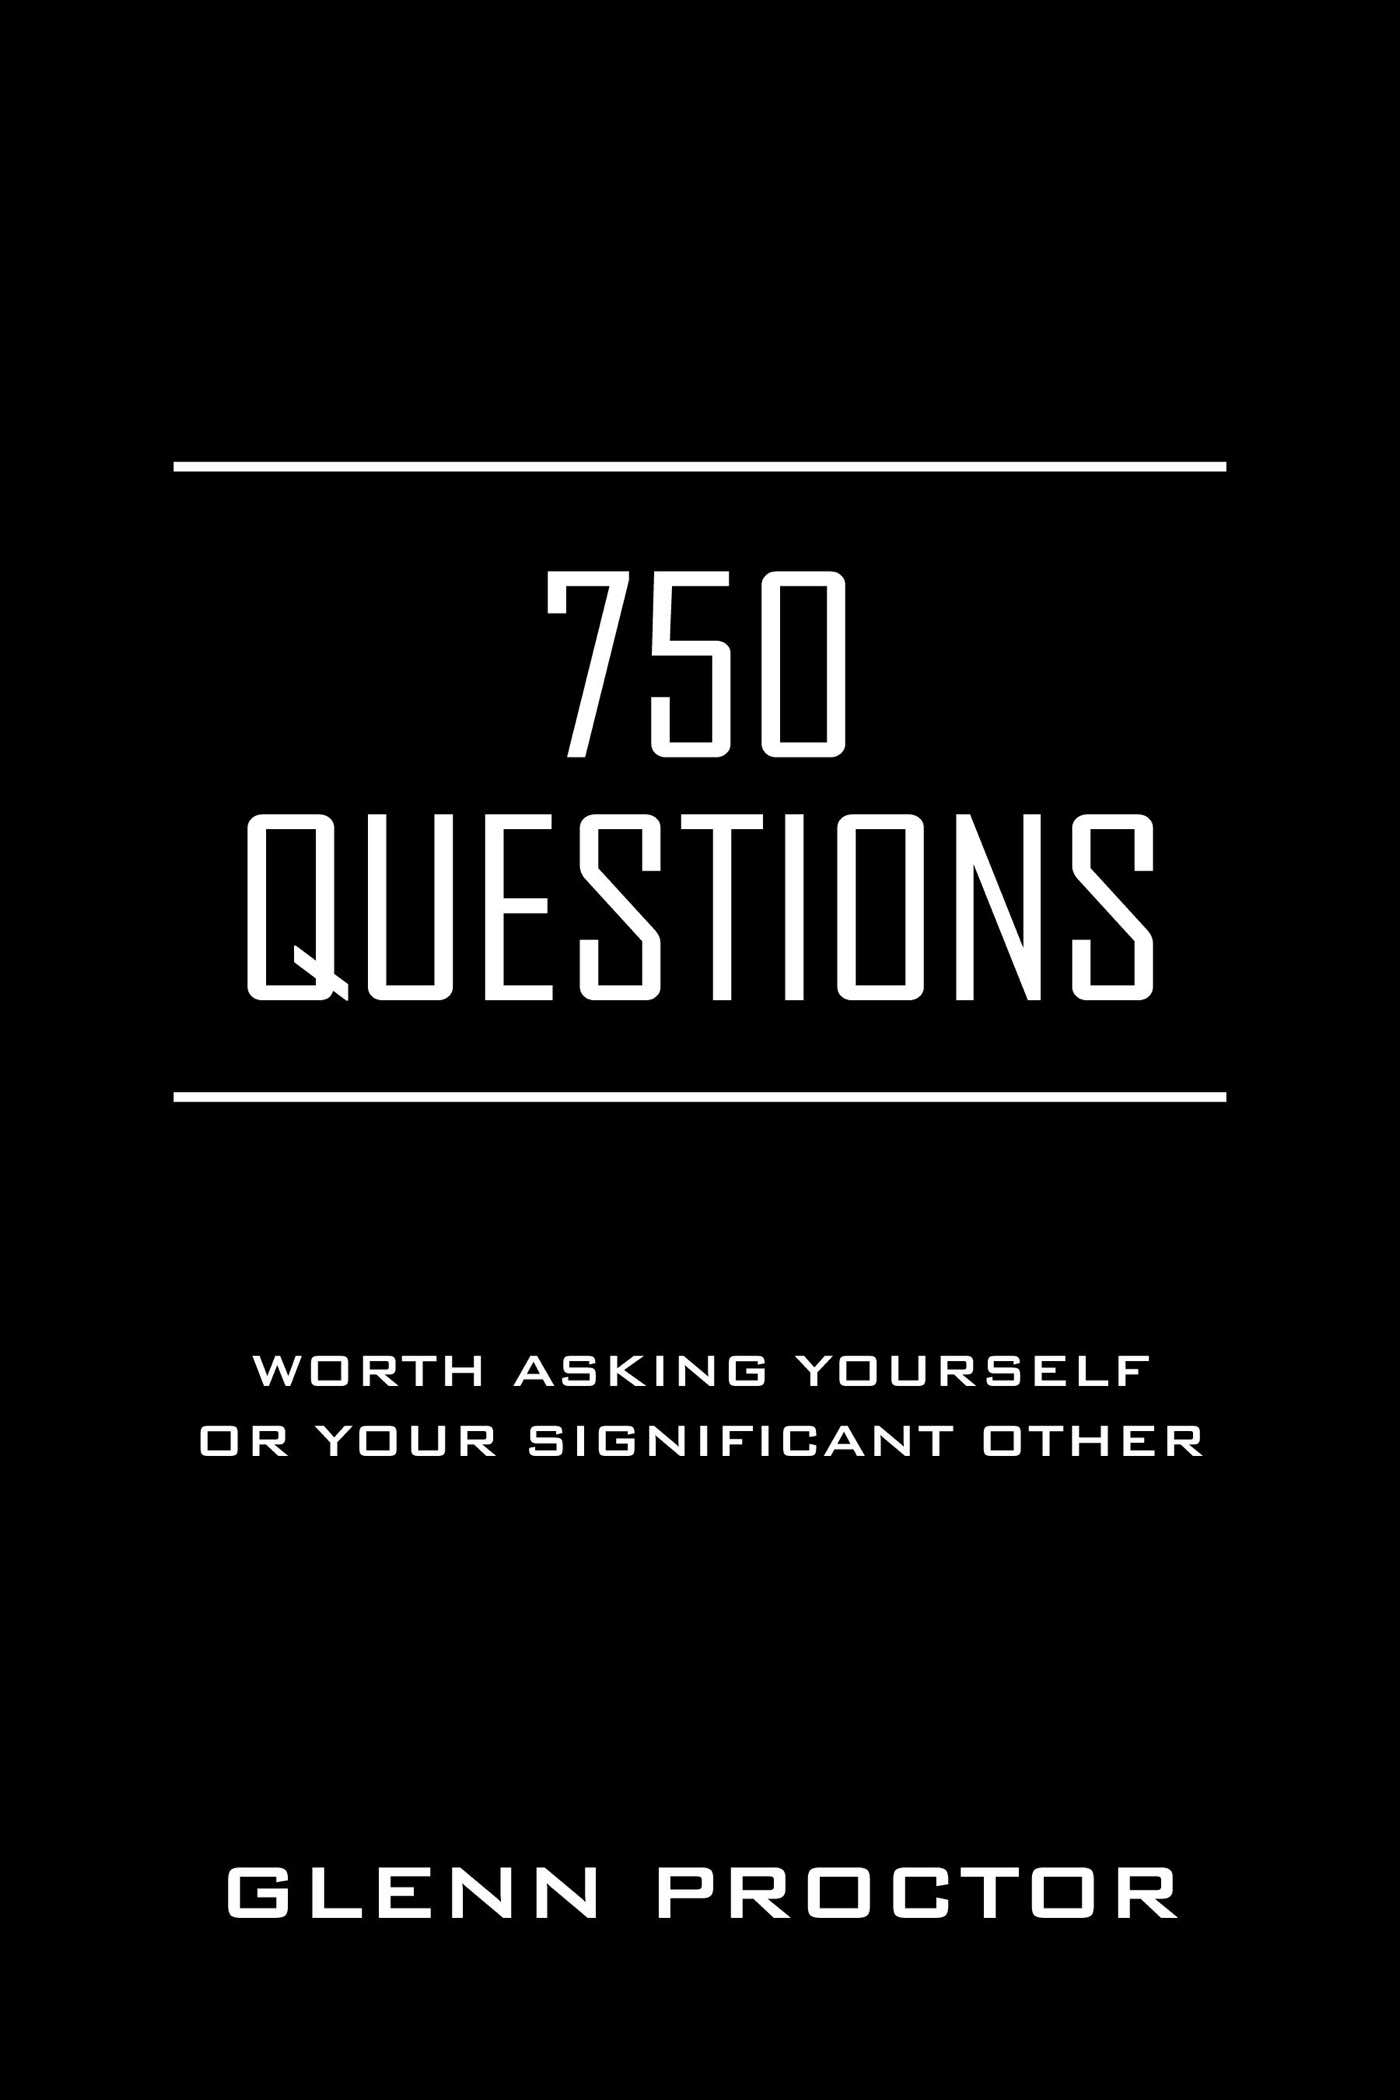 These 750 Questions are definitely worth asking yourself or someone you love!